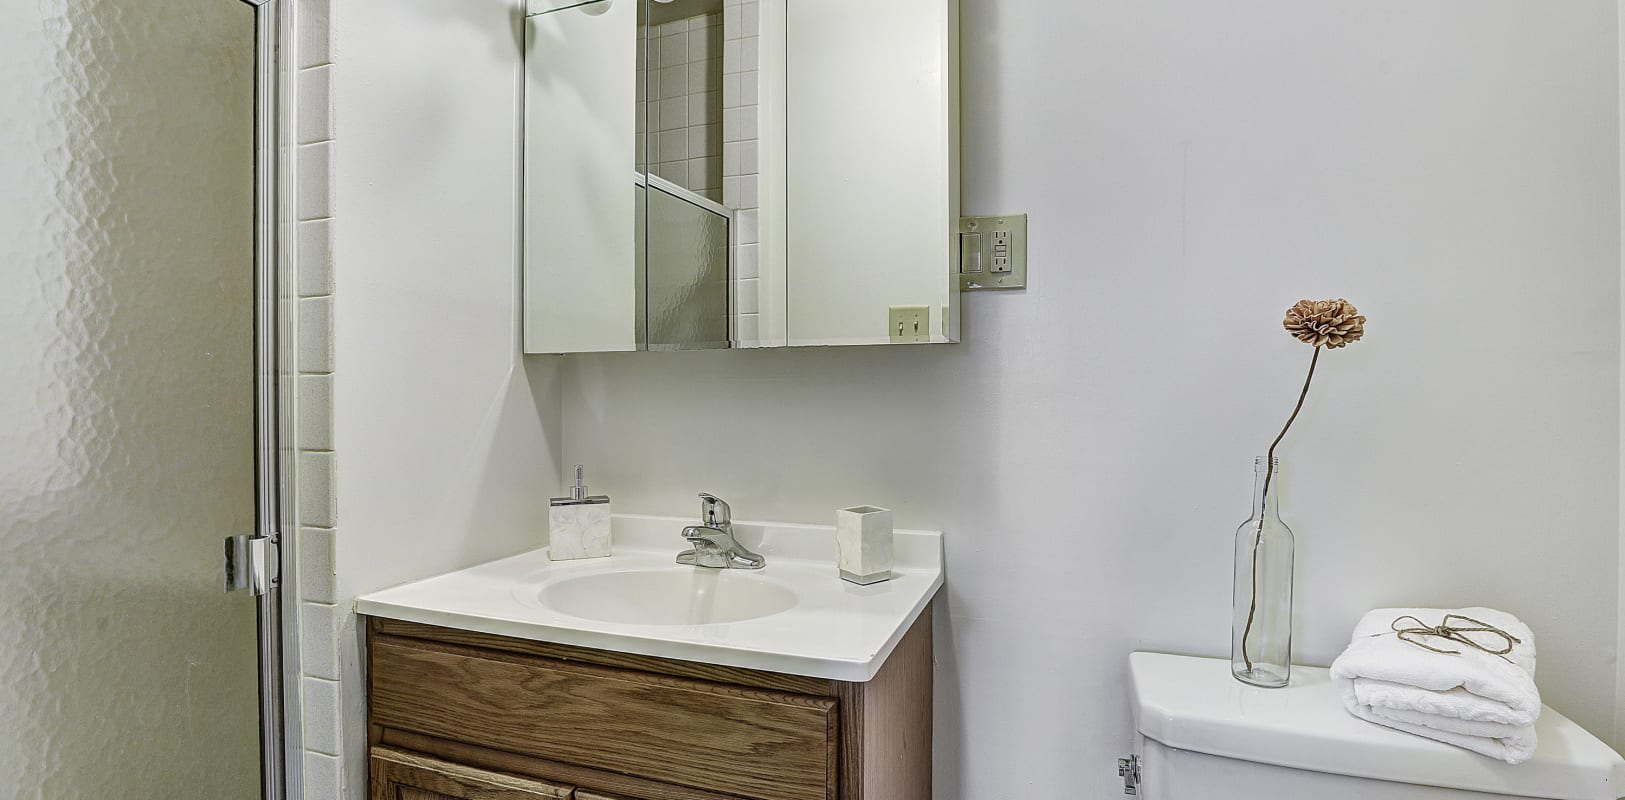 Nice bathroom with wood style vanity at Penn Crest Apartments in Allentown, Pennsylvania